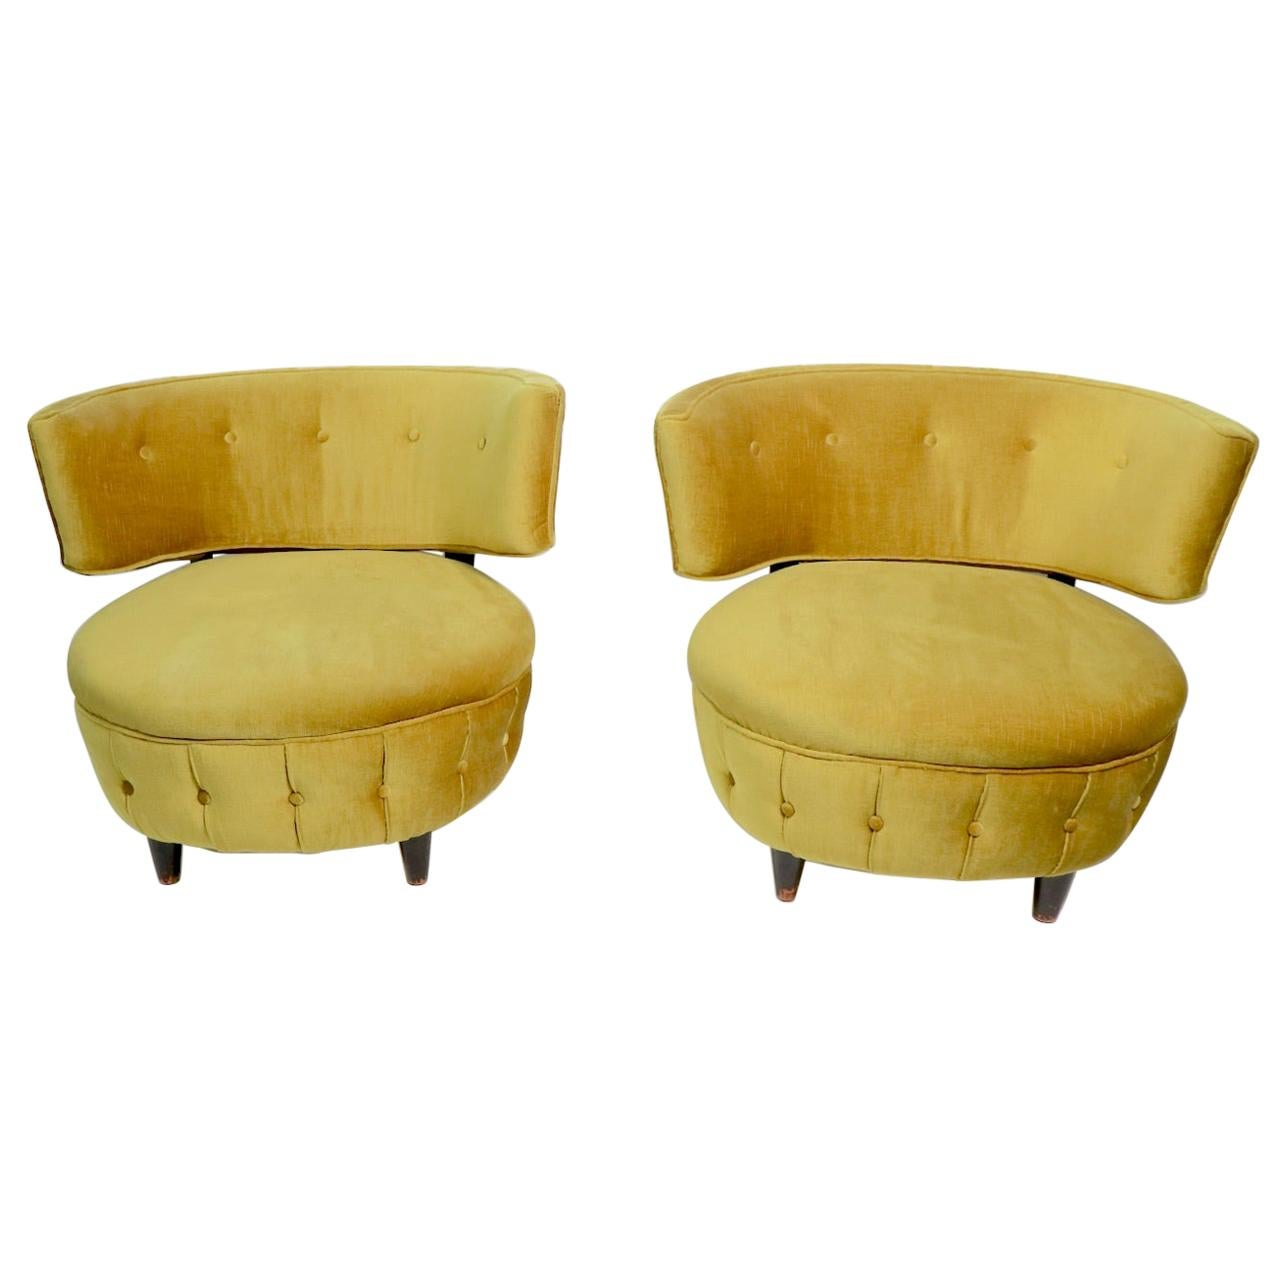 Pair of Rohde for Herman Miller Lounger Slipper Chairs